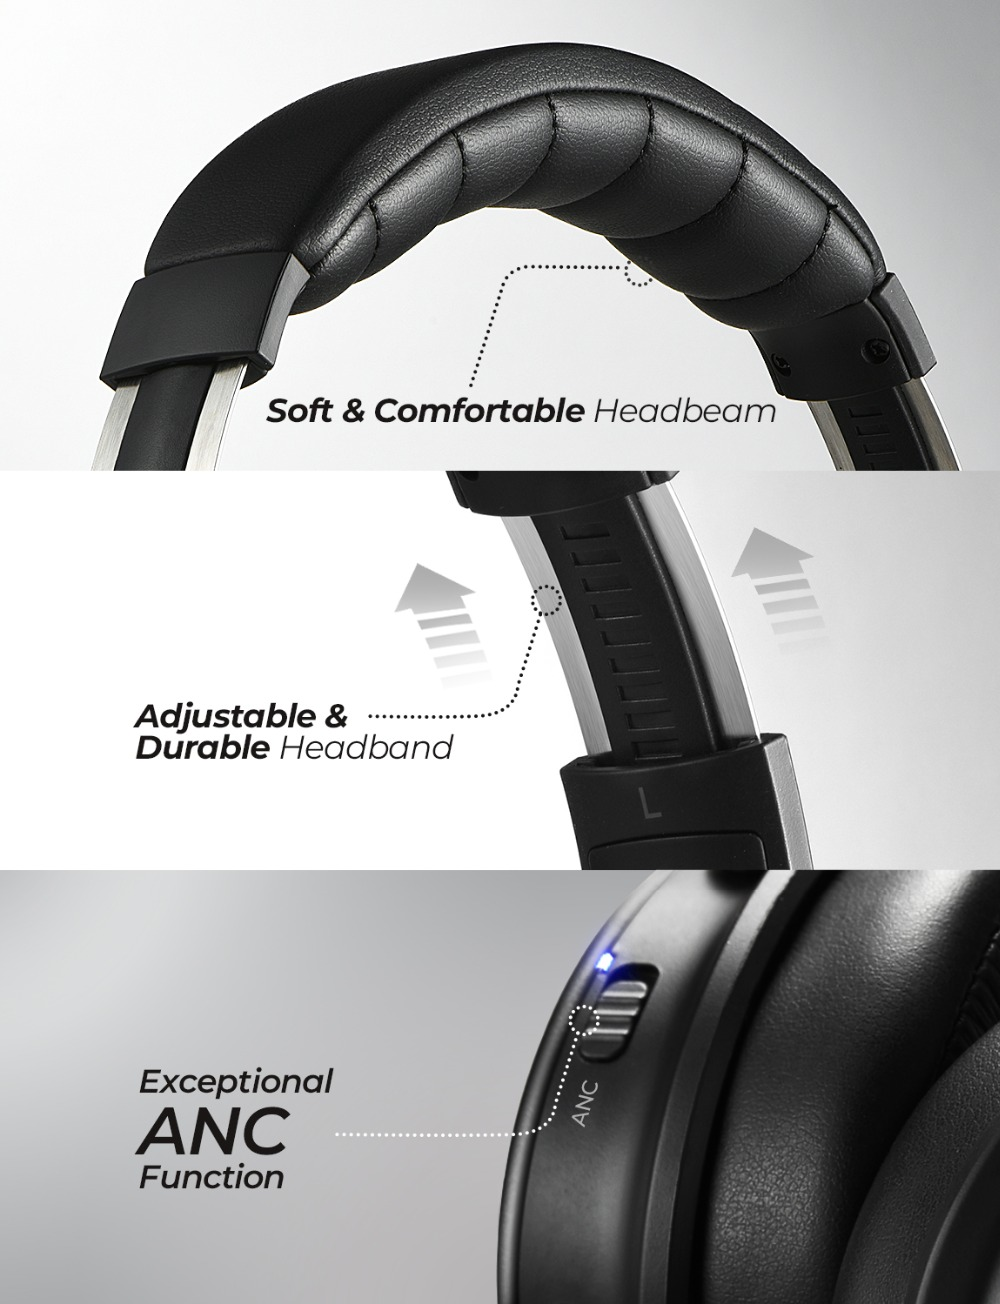 Mpow H17 Wireless Headphone Bluetooth ANC Headphones Fast Charging Active Noise Cancelling Headset For Huawei P30 Pro iPhone X 6 (6)